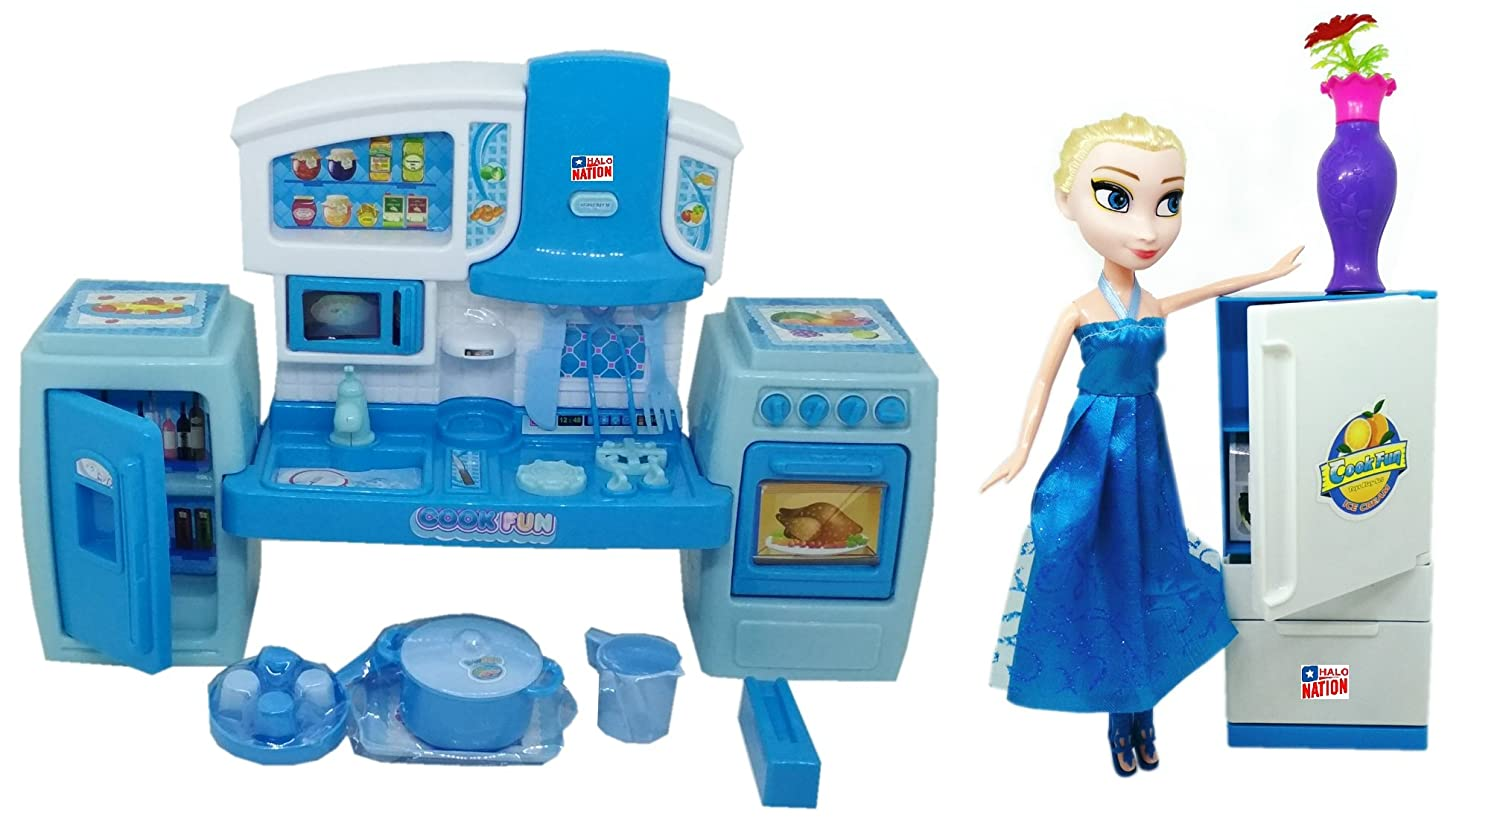 Buy HALO NATION Fashion Frozen Kitchen Set with Princess Doll ...